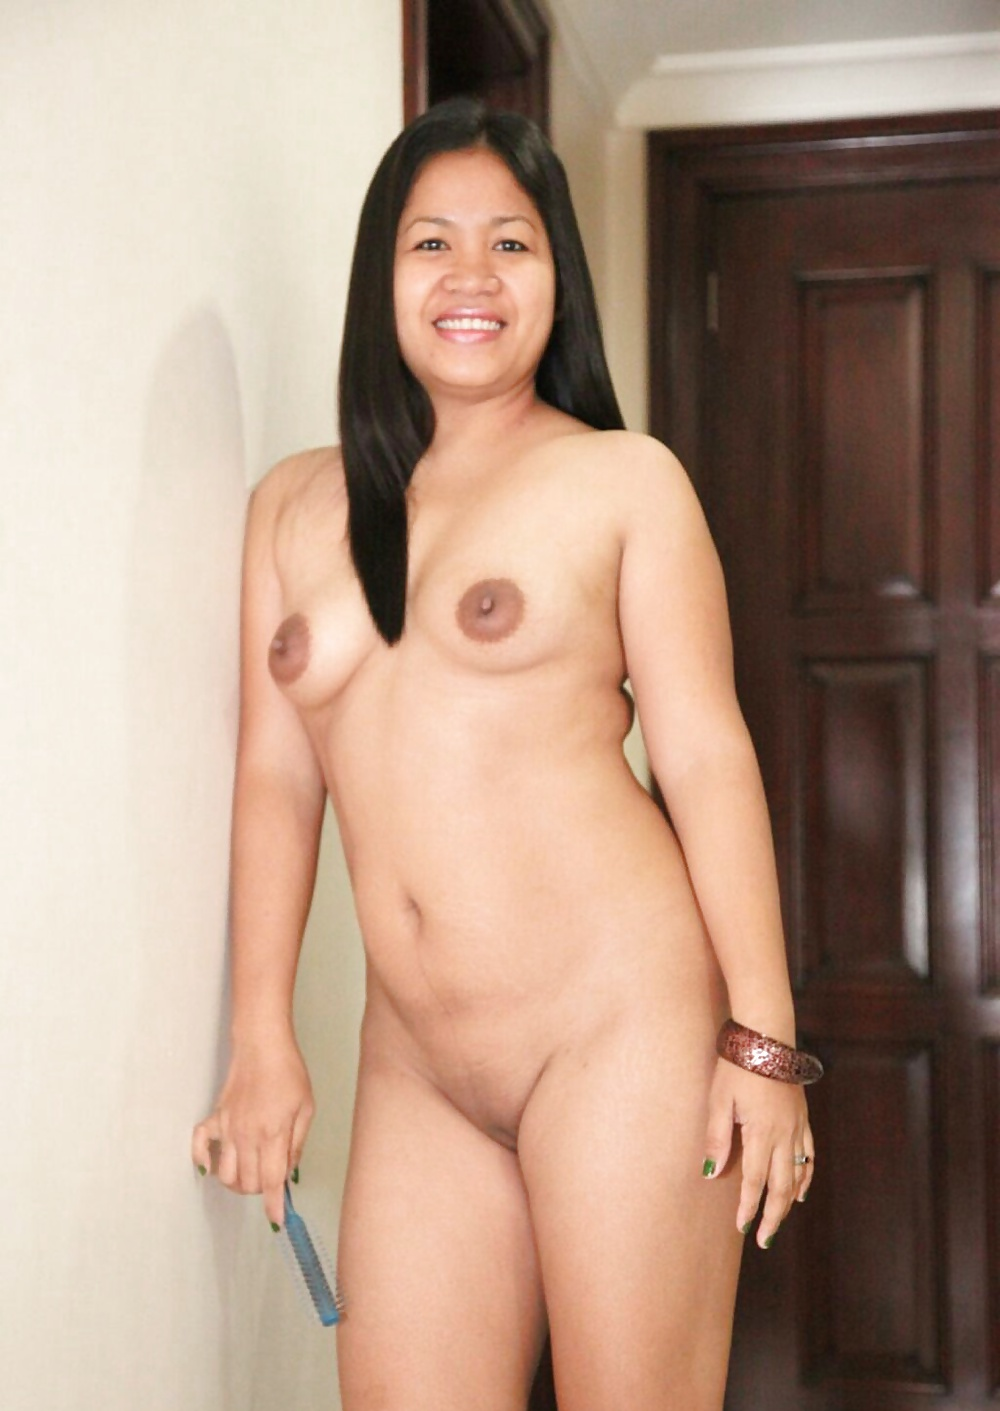 Filipina mom shanell danatil naked playing with cock